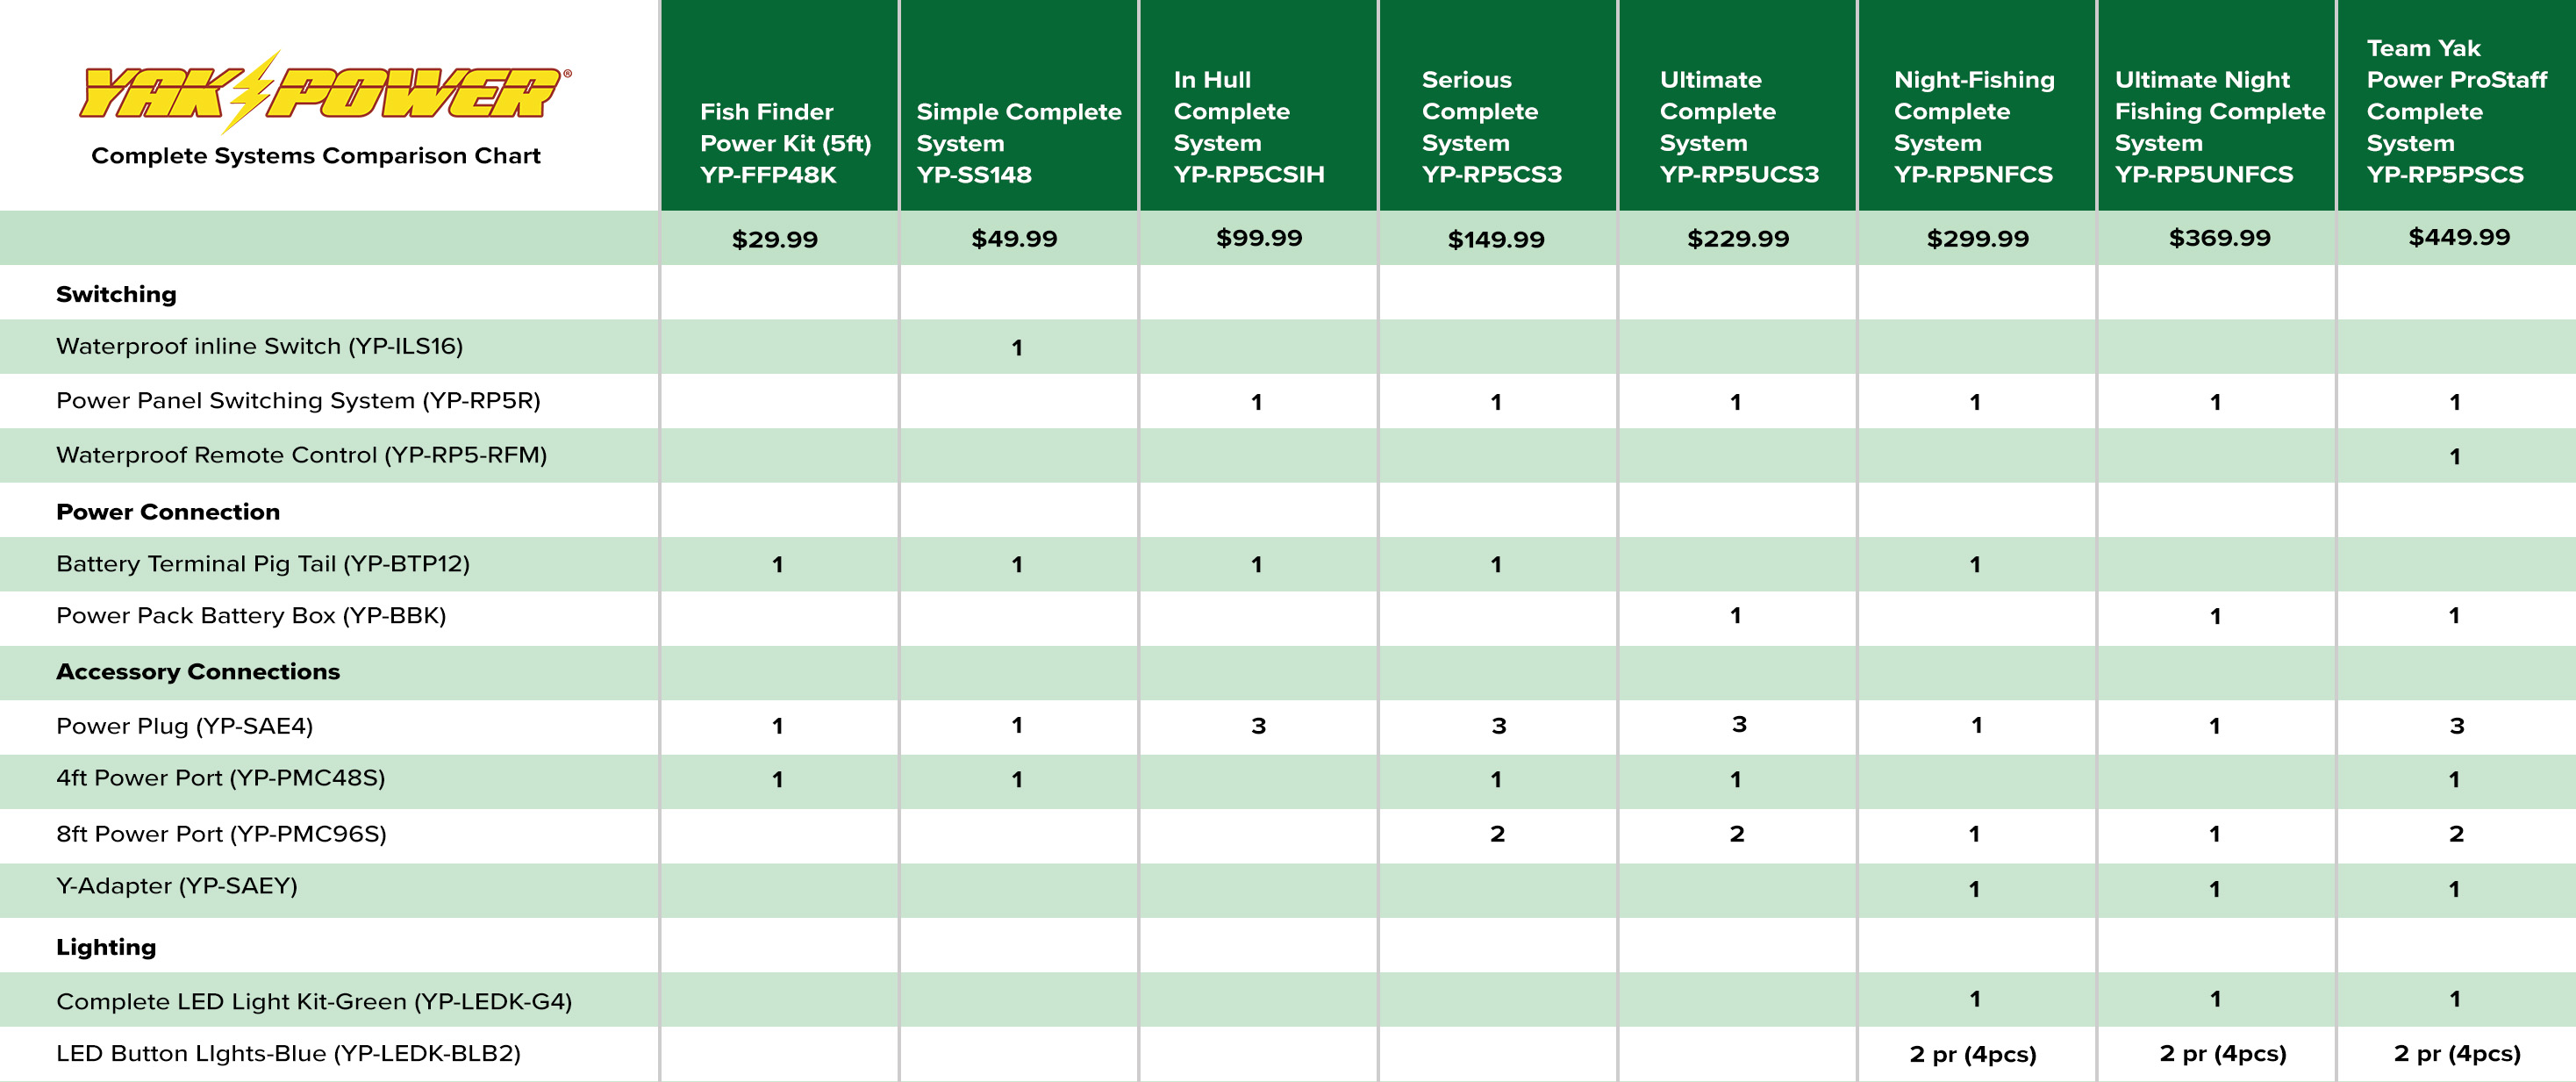 Complete Systems Comparison Chart